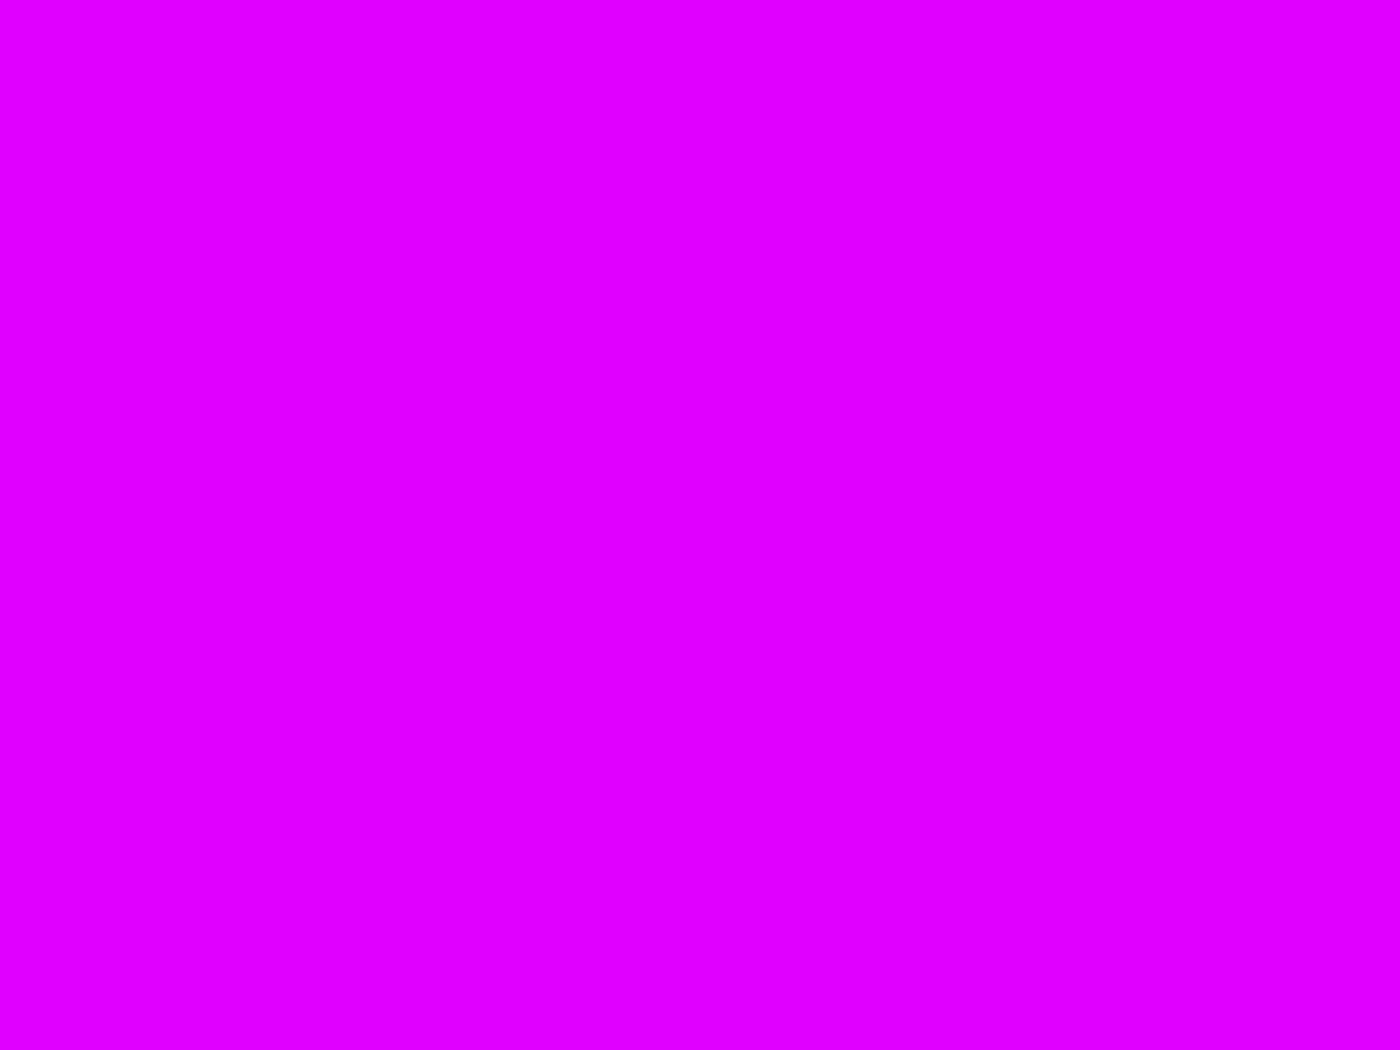 1400x1050 Phlox Solid Color Background